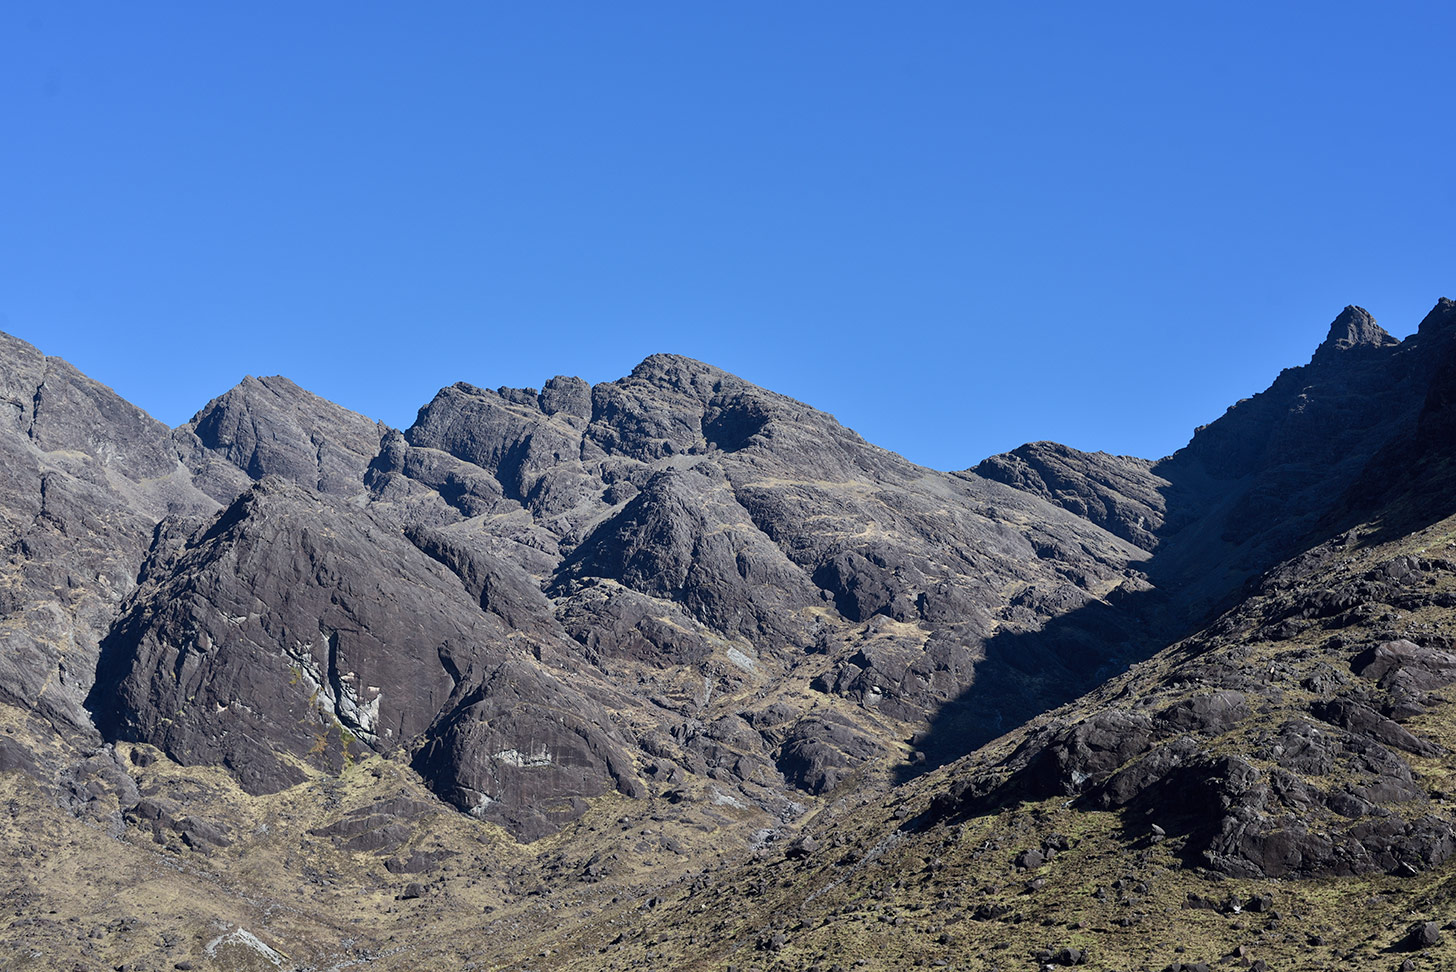 The gabbro shield of Coir'-Uisg Buttress (left) below Coire an Uaigneis on Skye. © Ray Wood